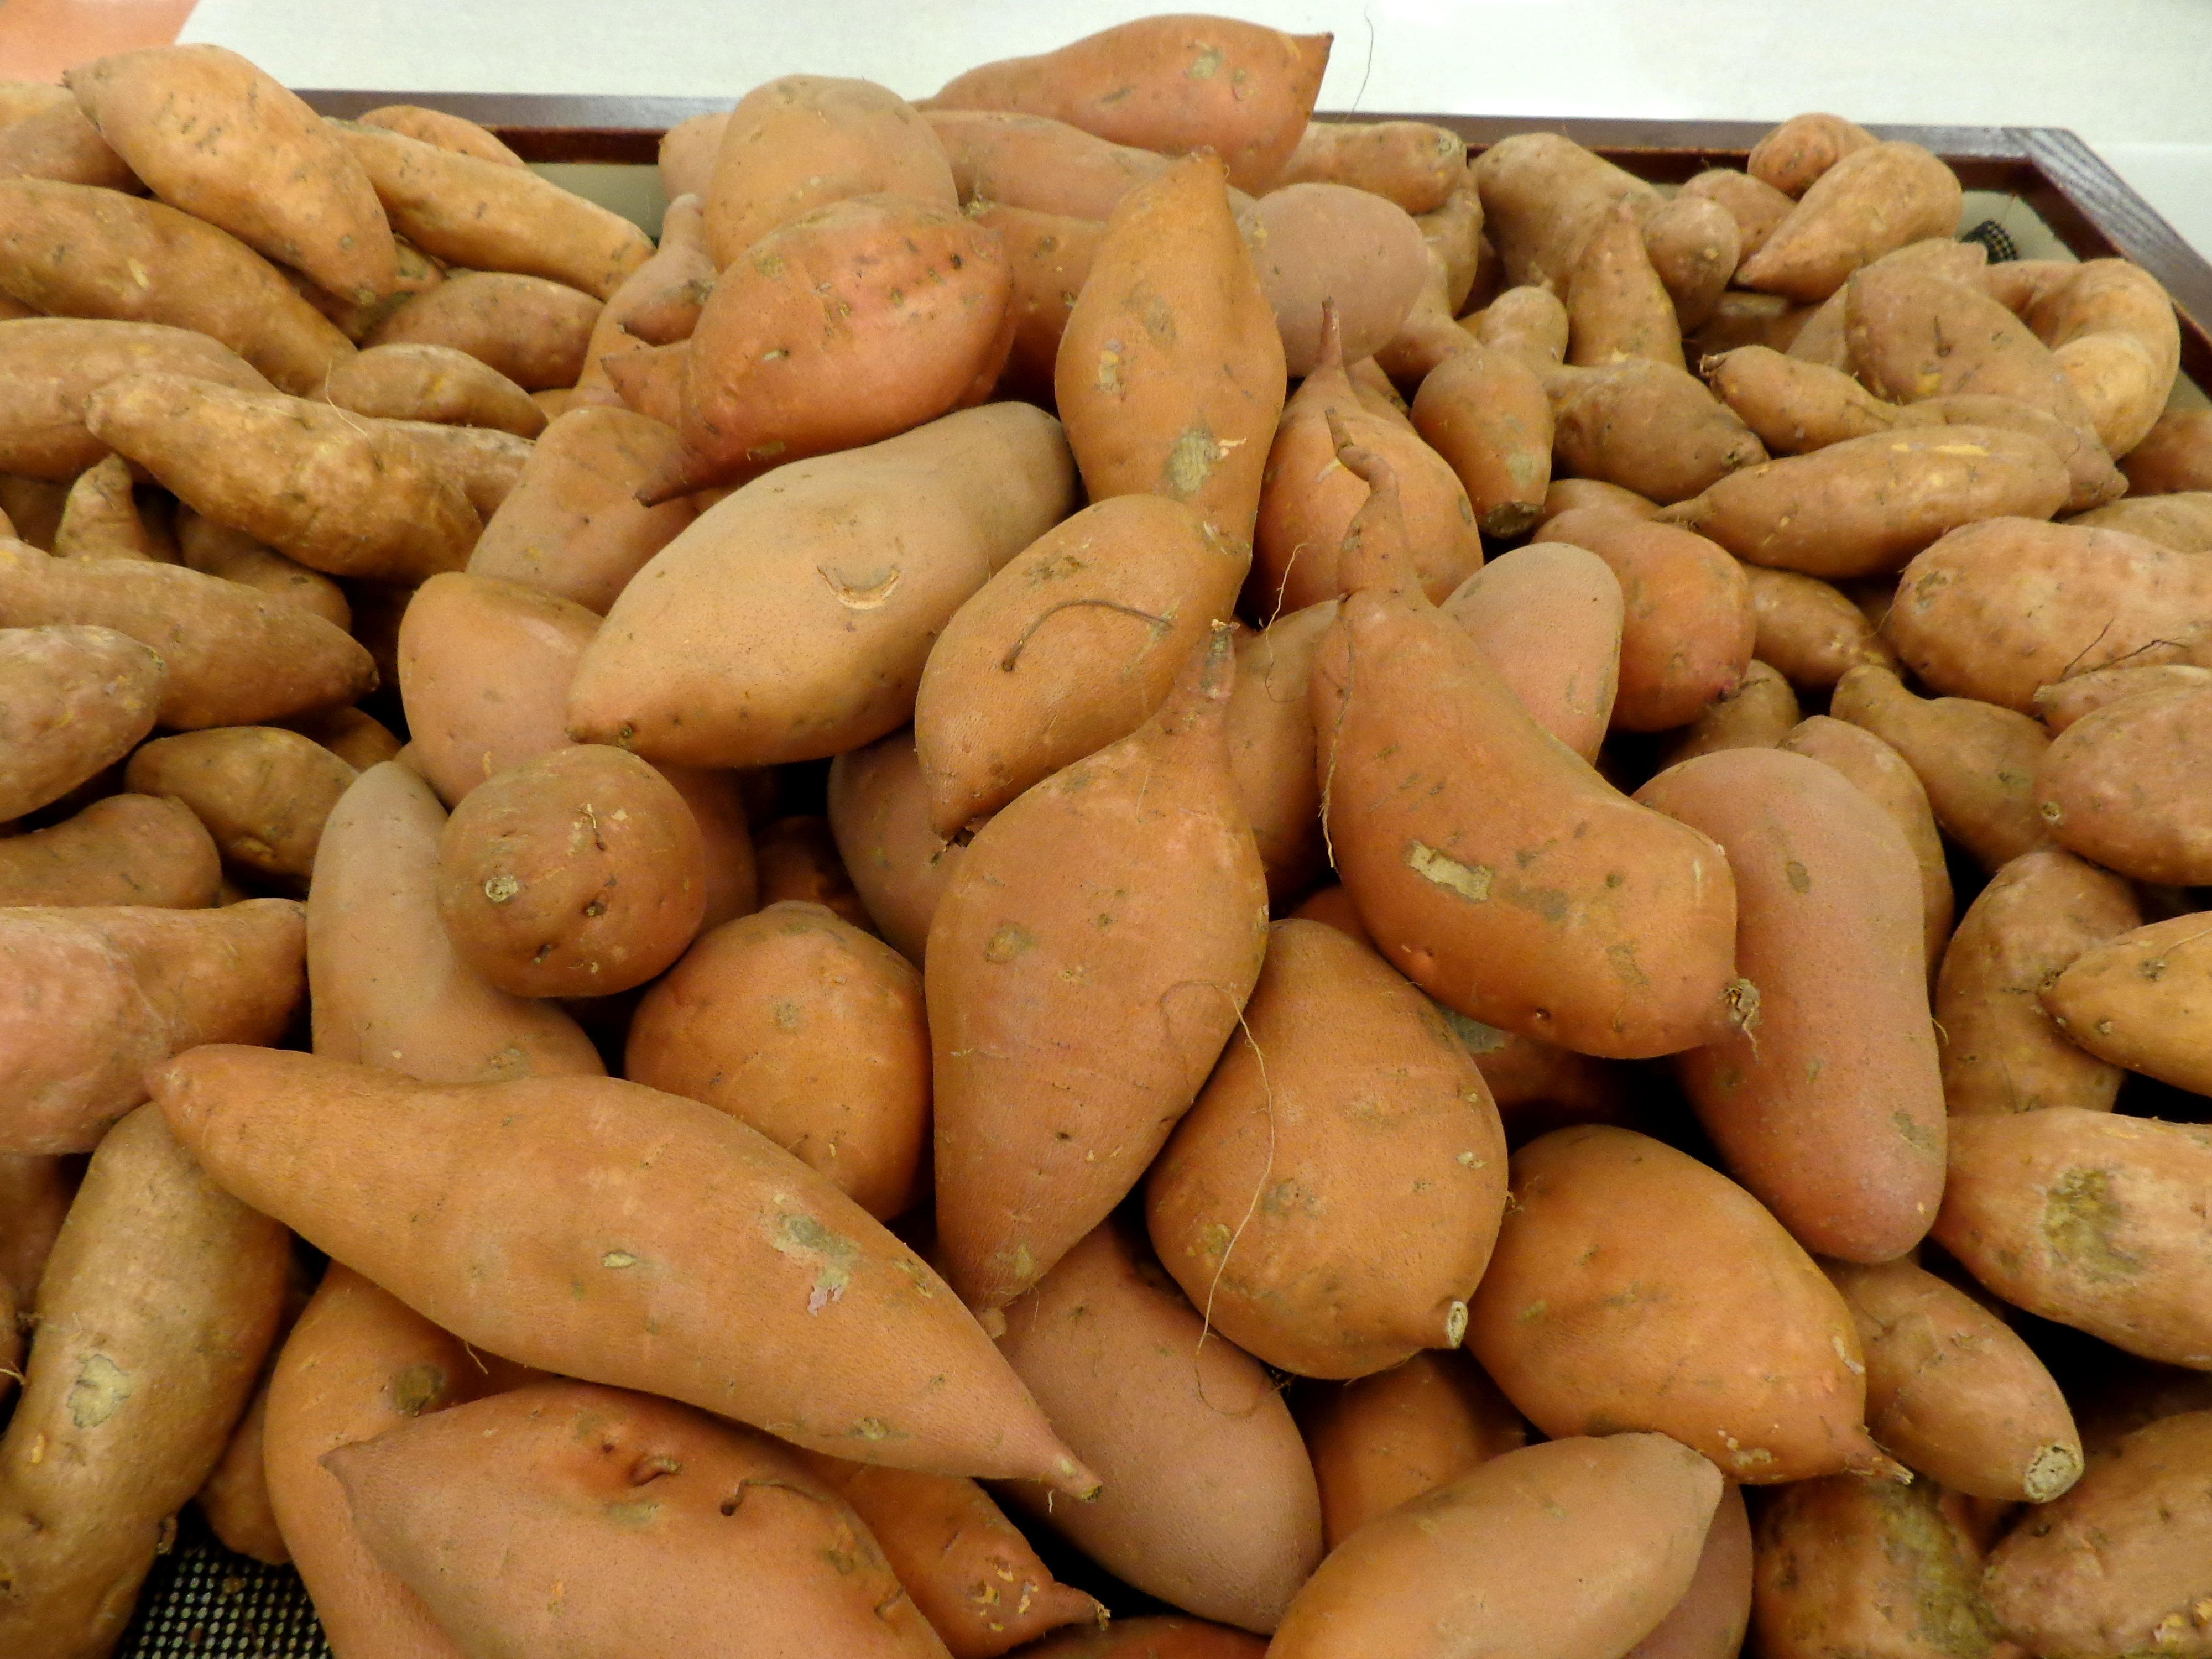 Bean clipart sweet potato Photos Free and Picture Photograph